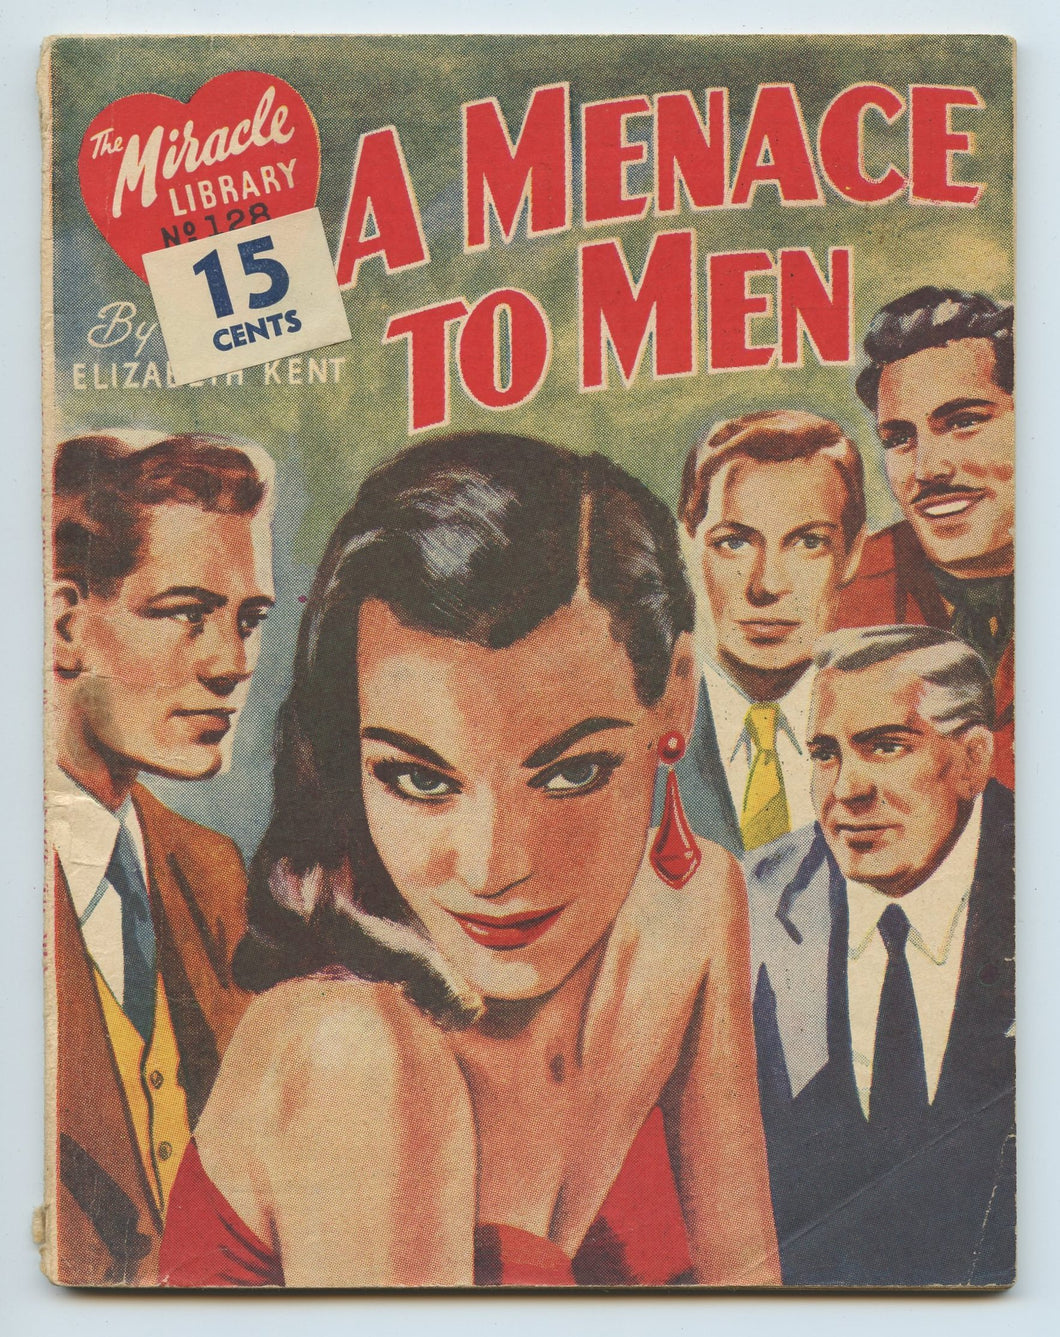 A Menace To Men